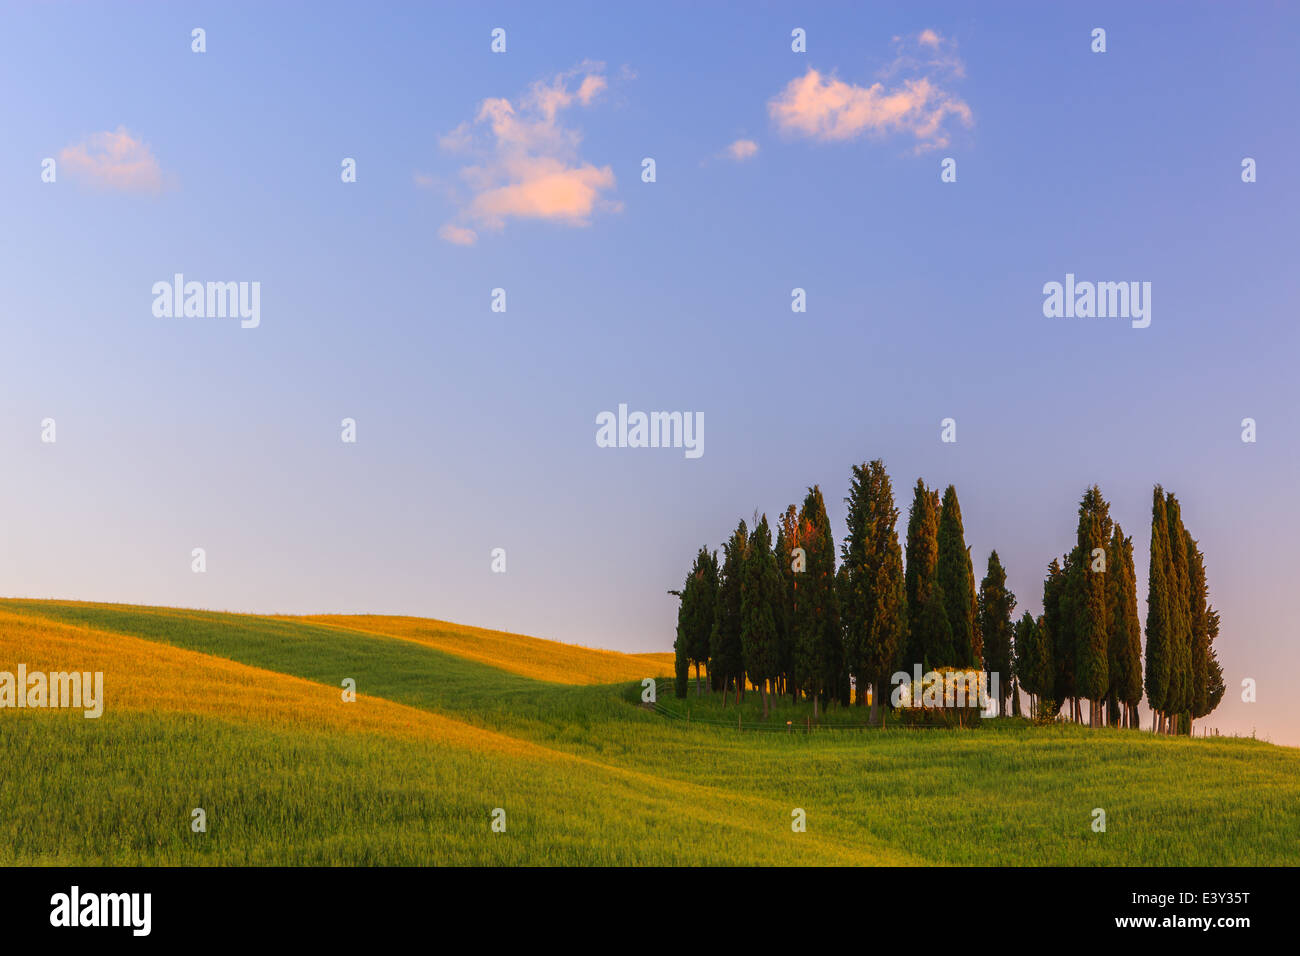 Cypress trees at Torrenieri, close to Montalcino in the heart of the Tuscany in Italy - Stock Image